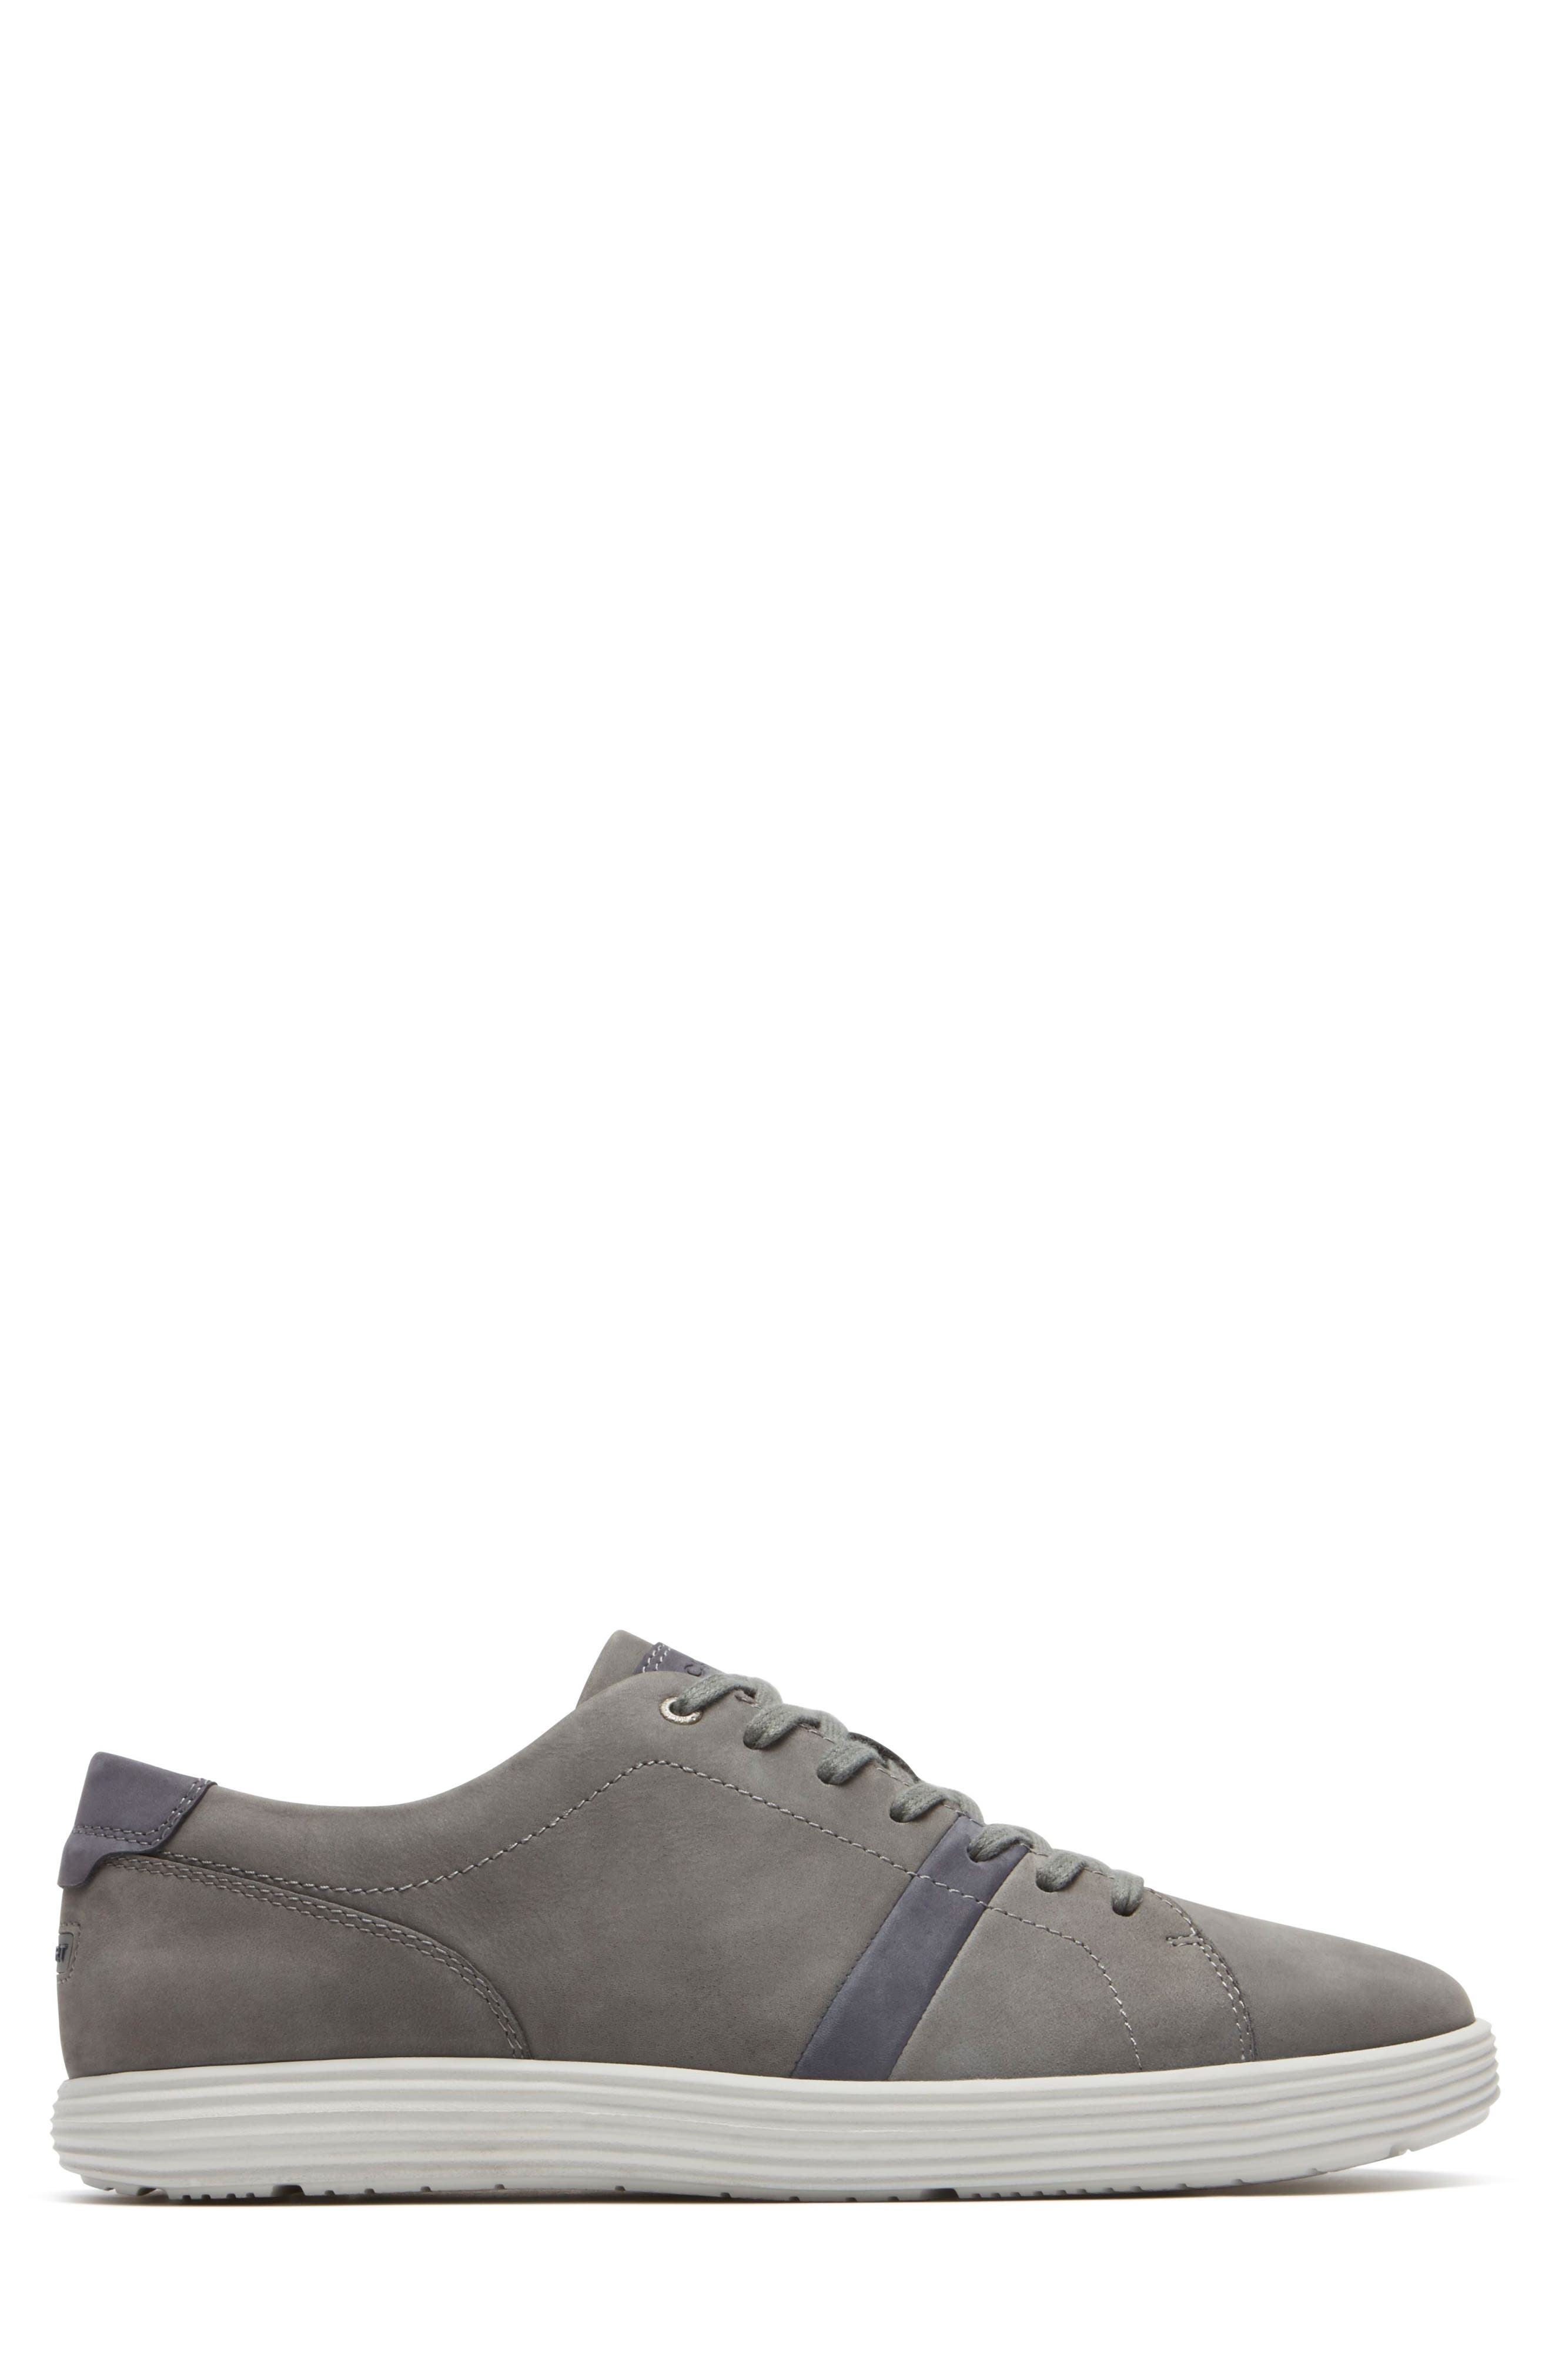 Thurston Sneaker,                             Alternate thumbnail 15, color,